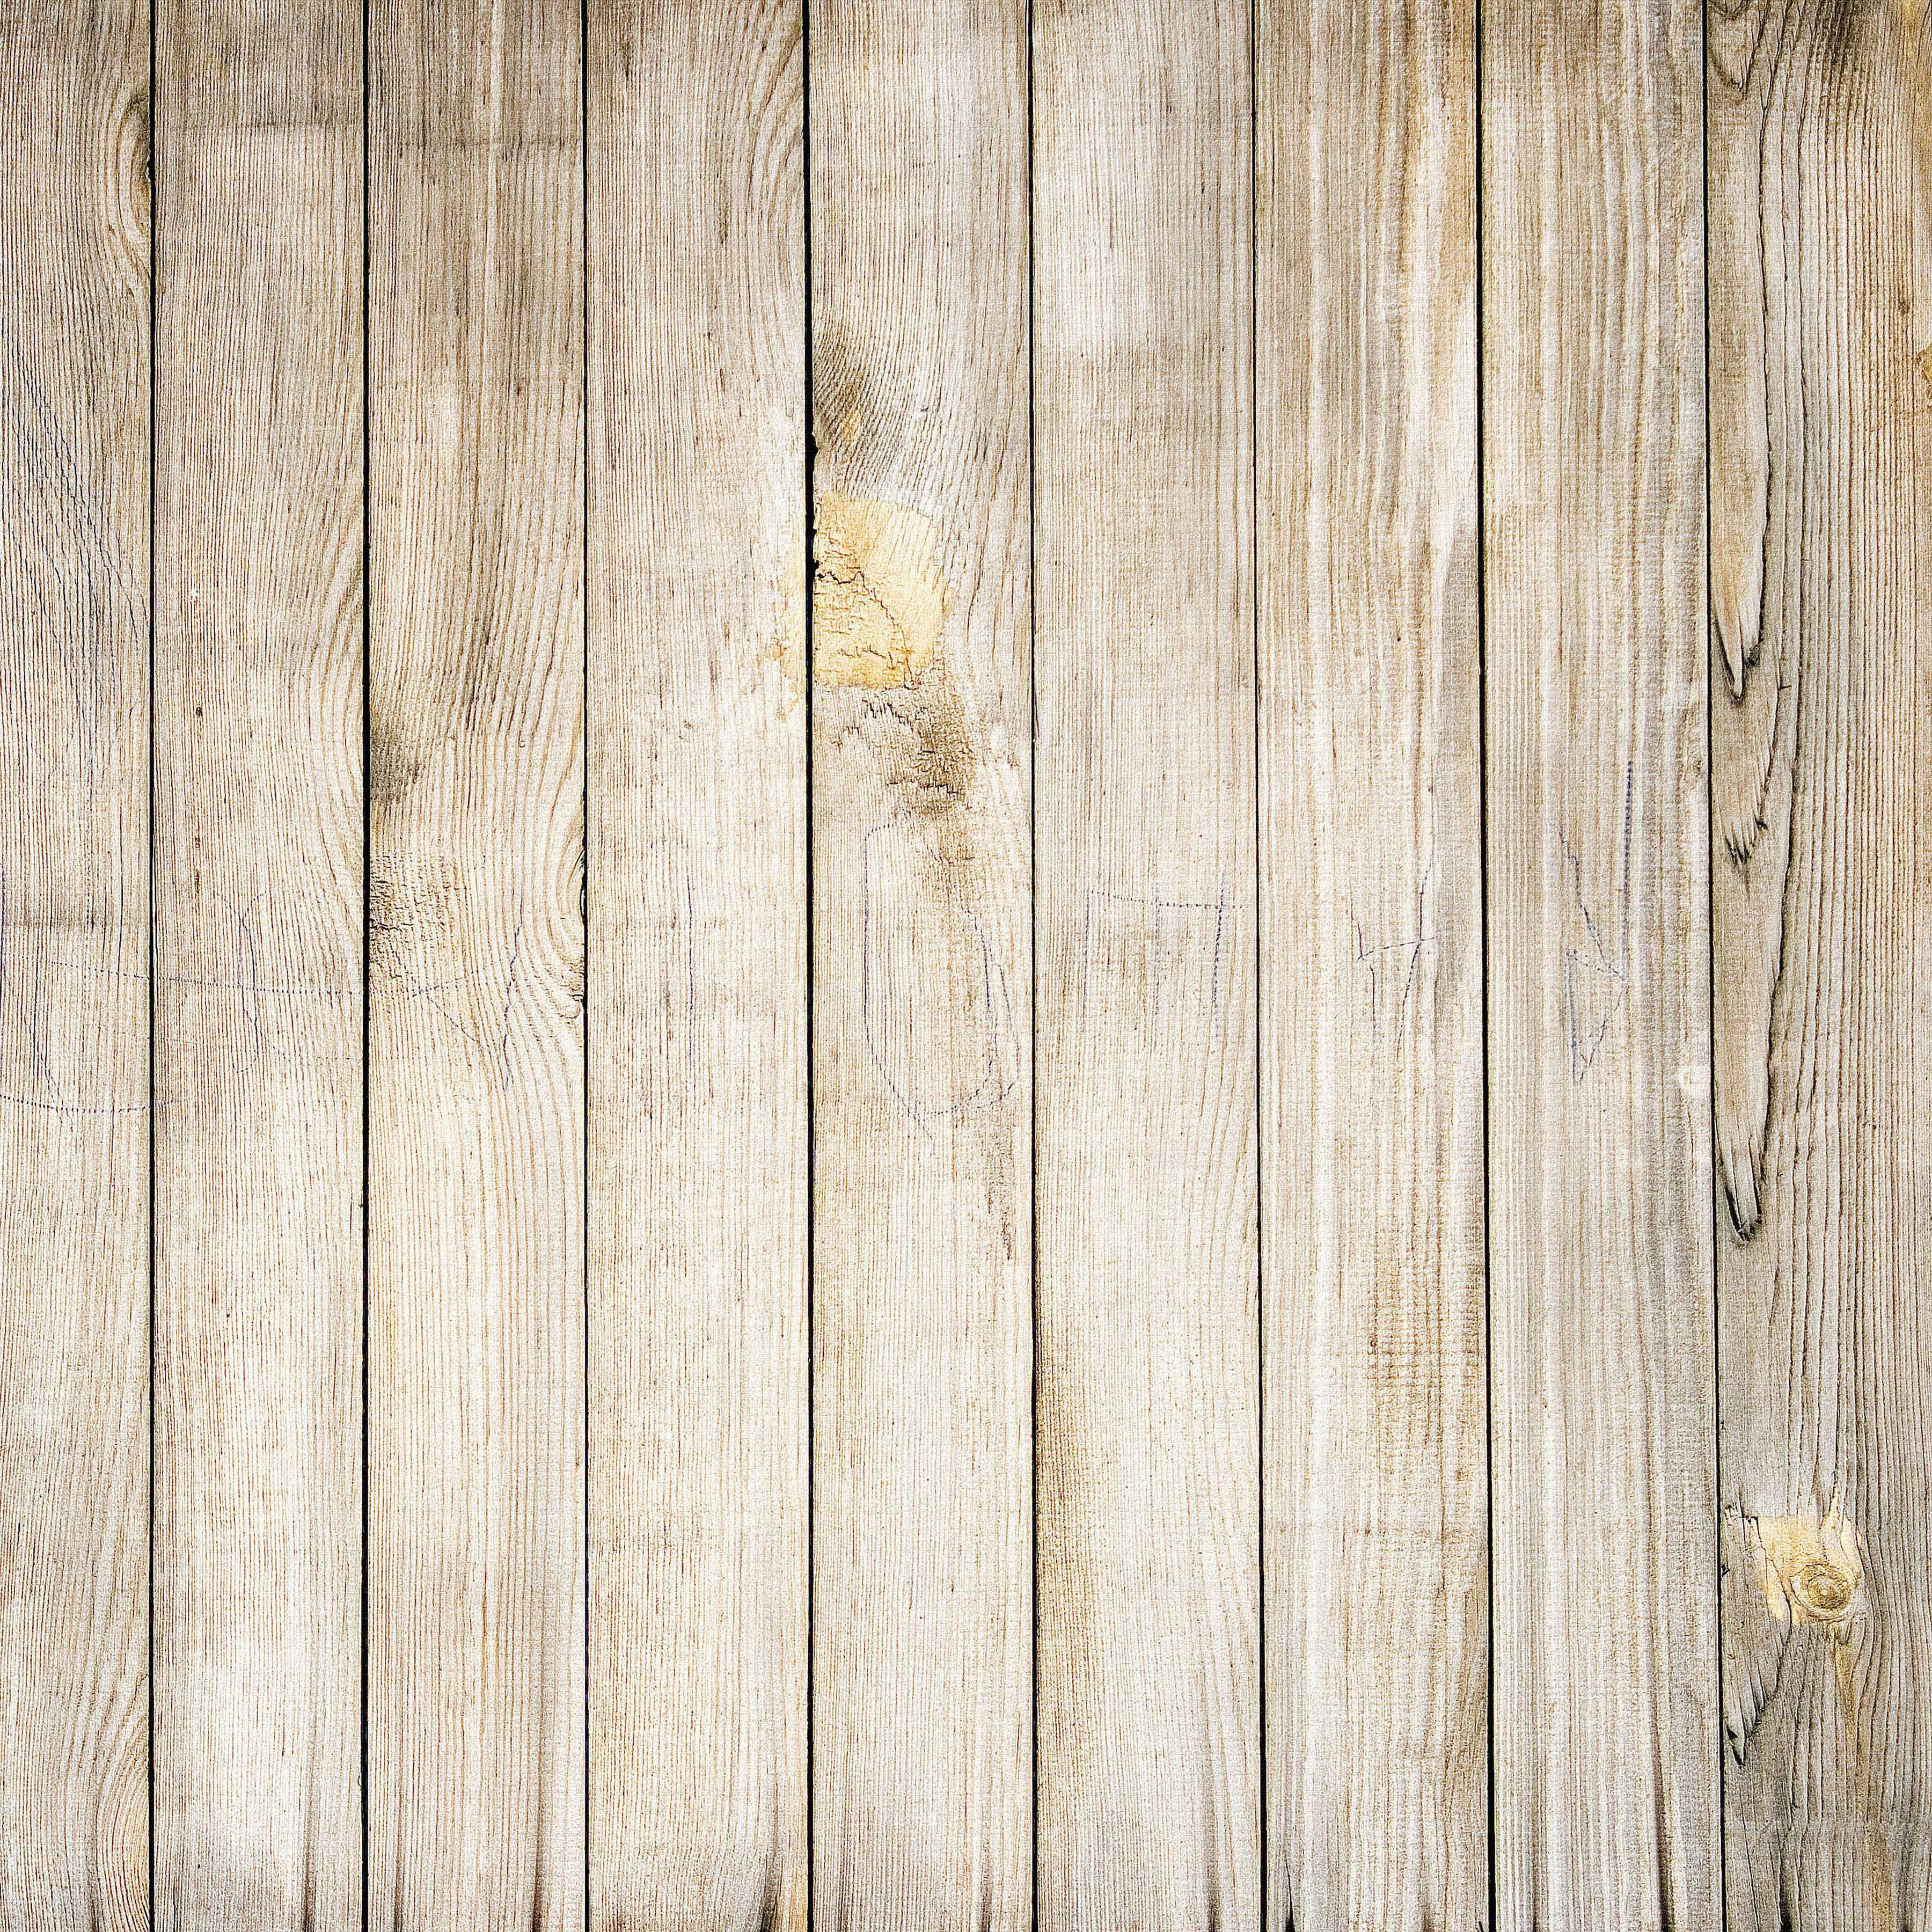 free wood backgrounds product